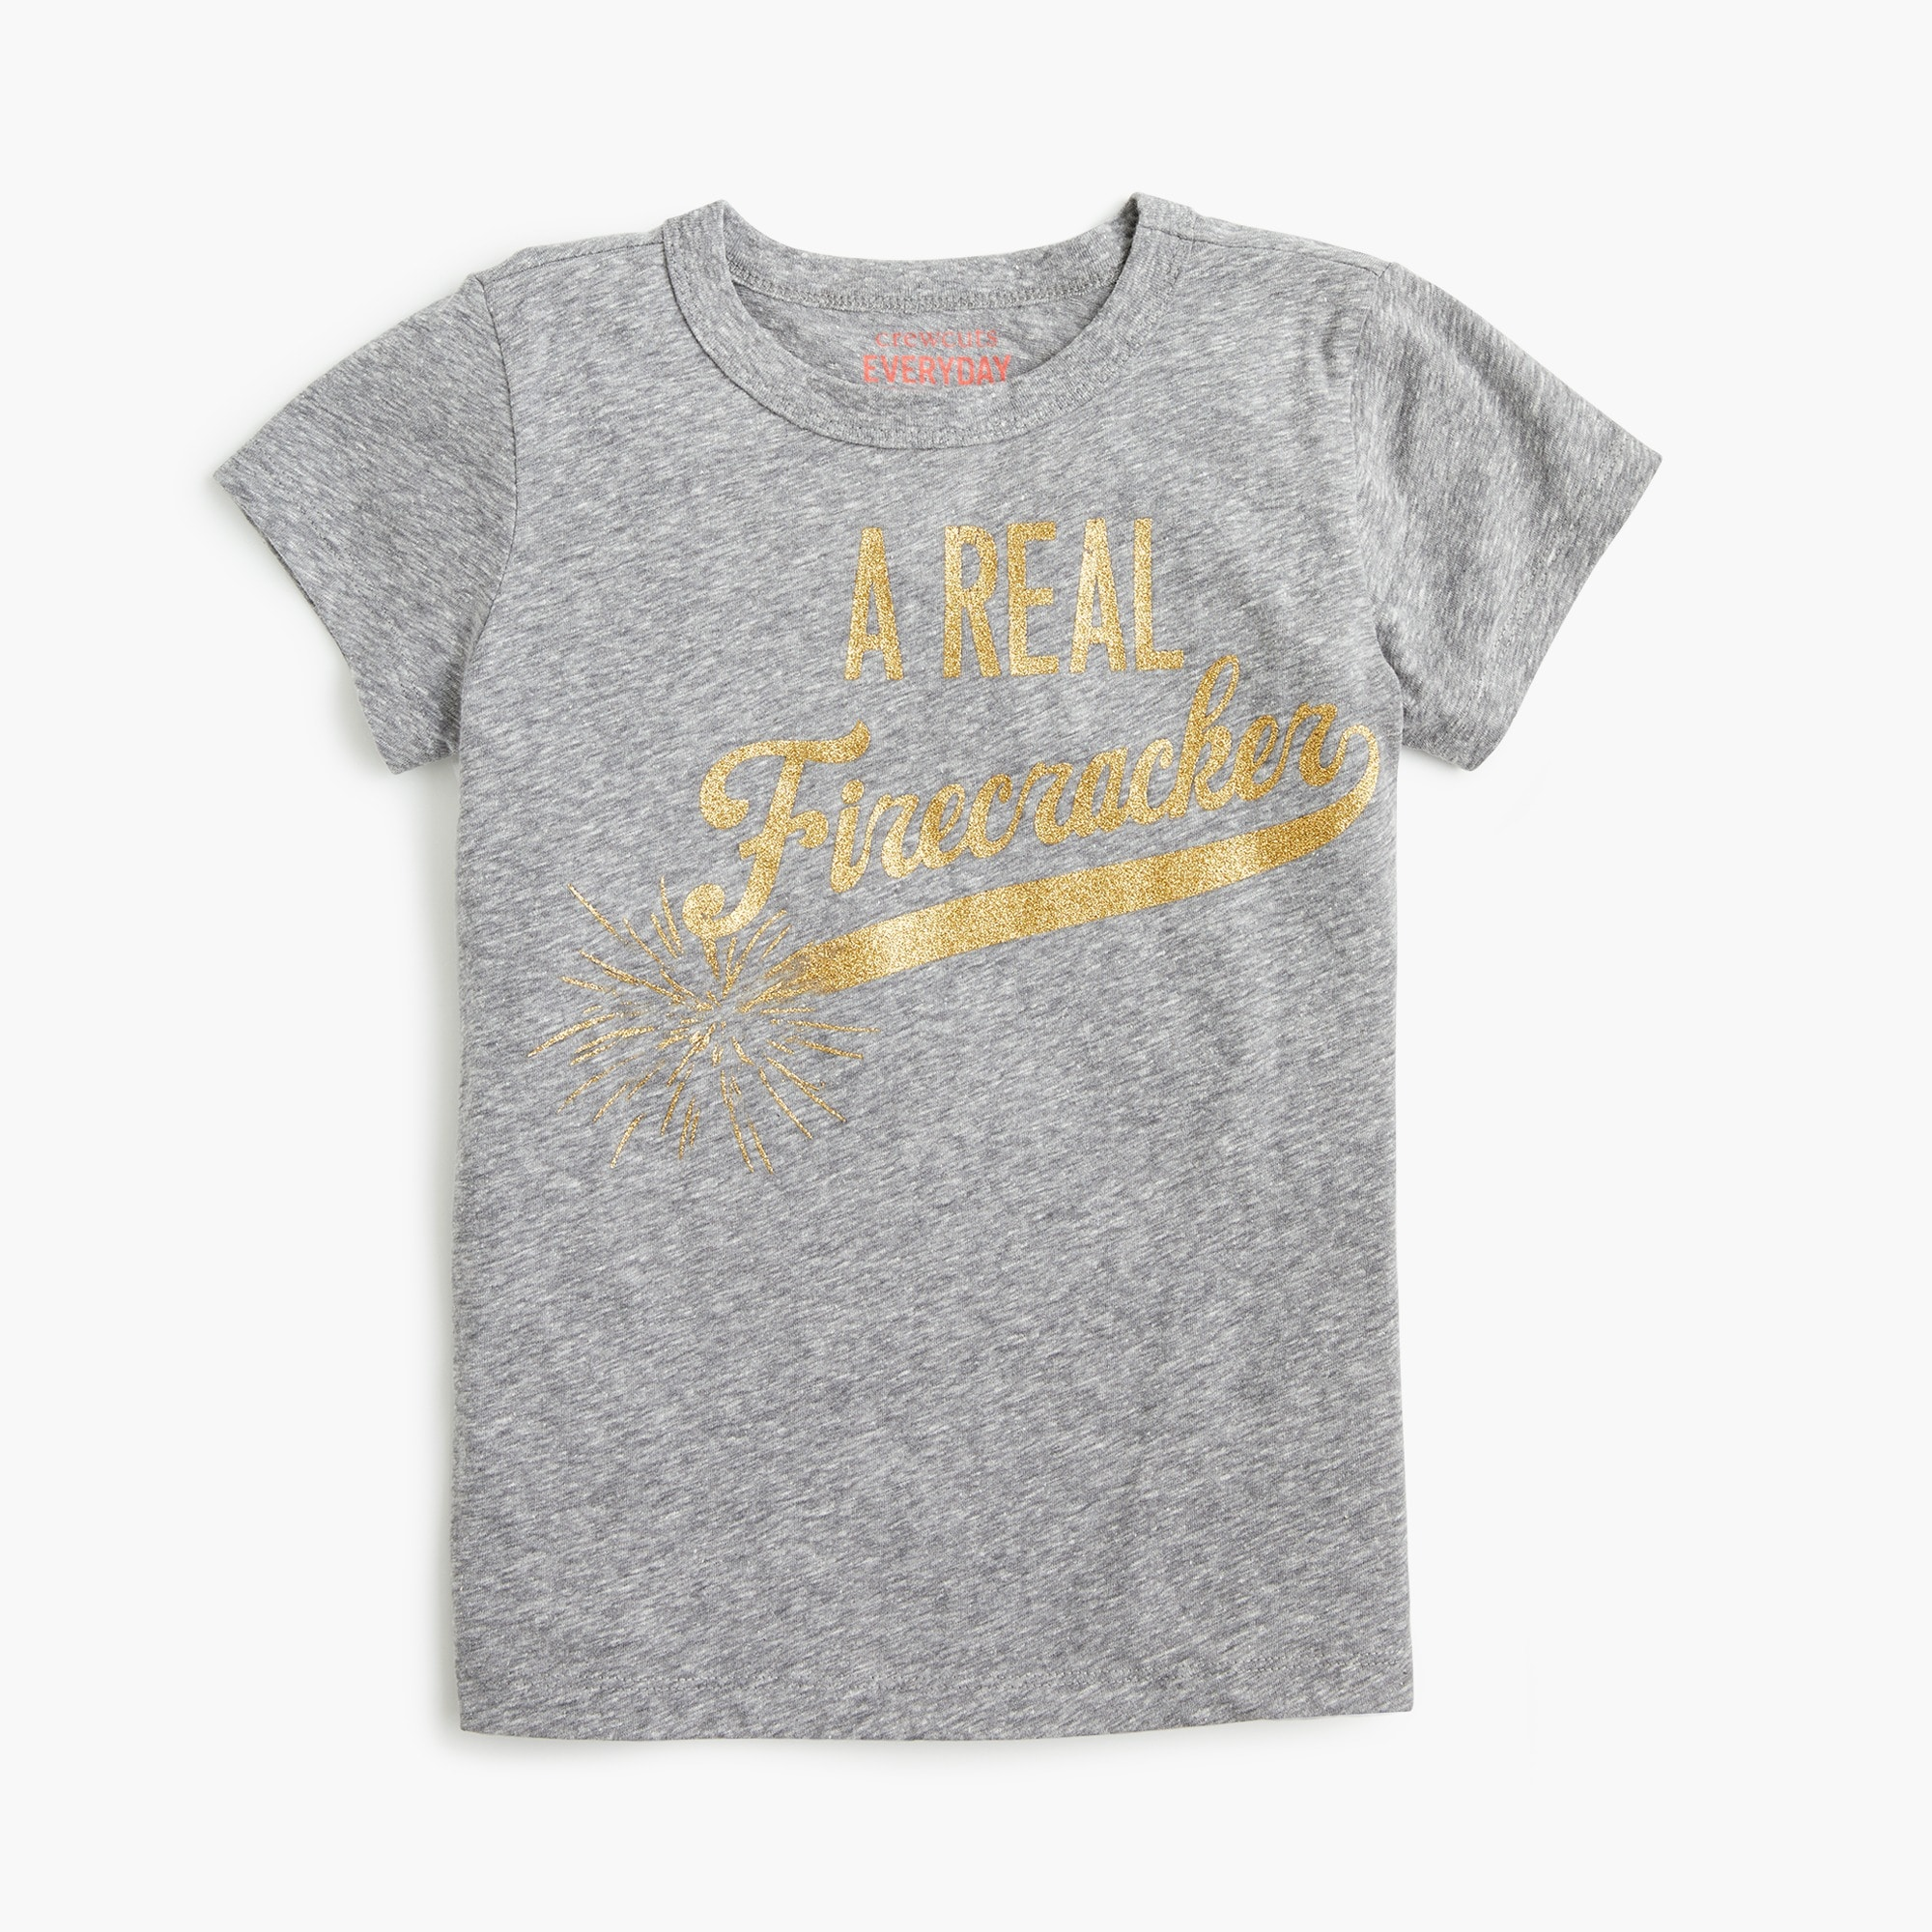 "girls Girls' ""a real firecracker"" T-shirt"